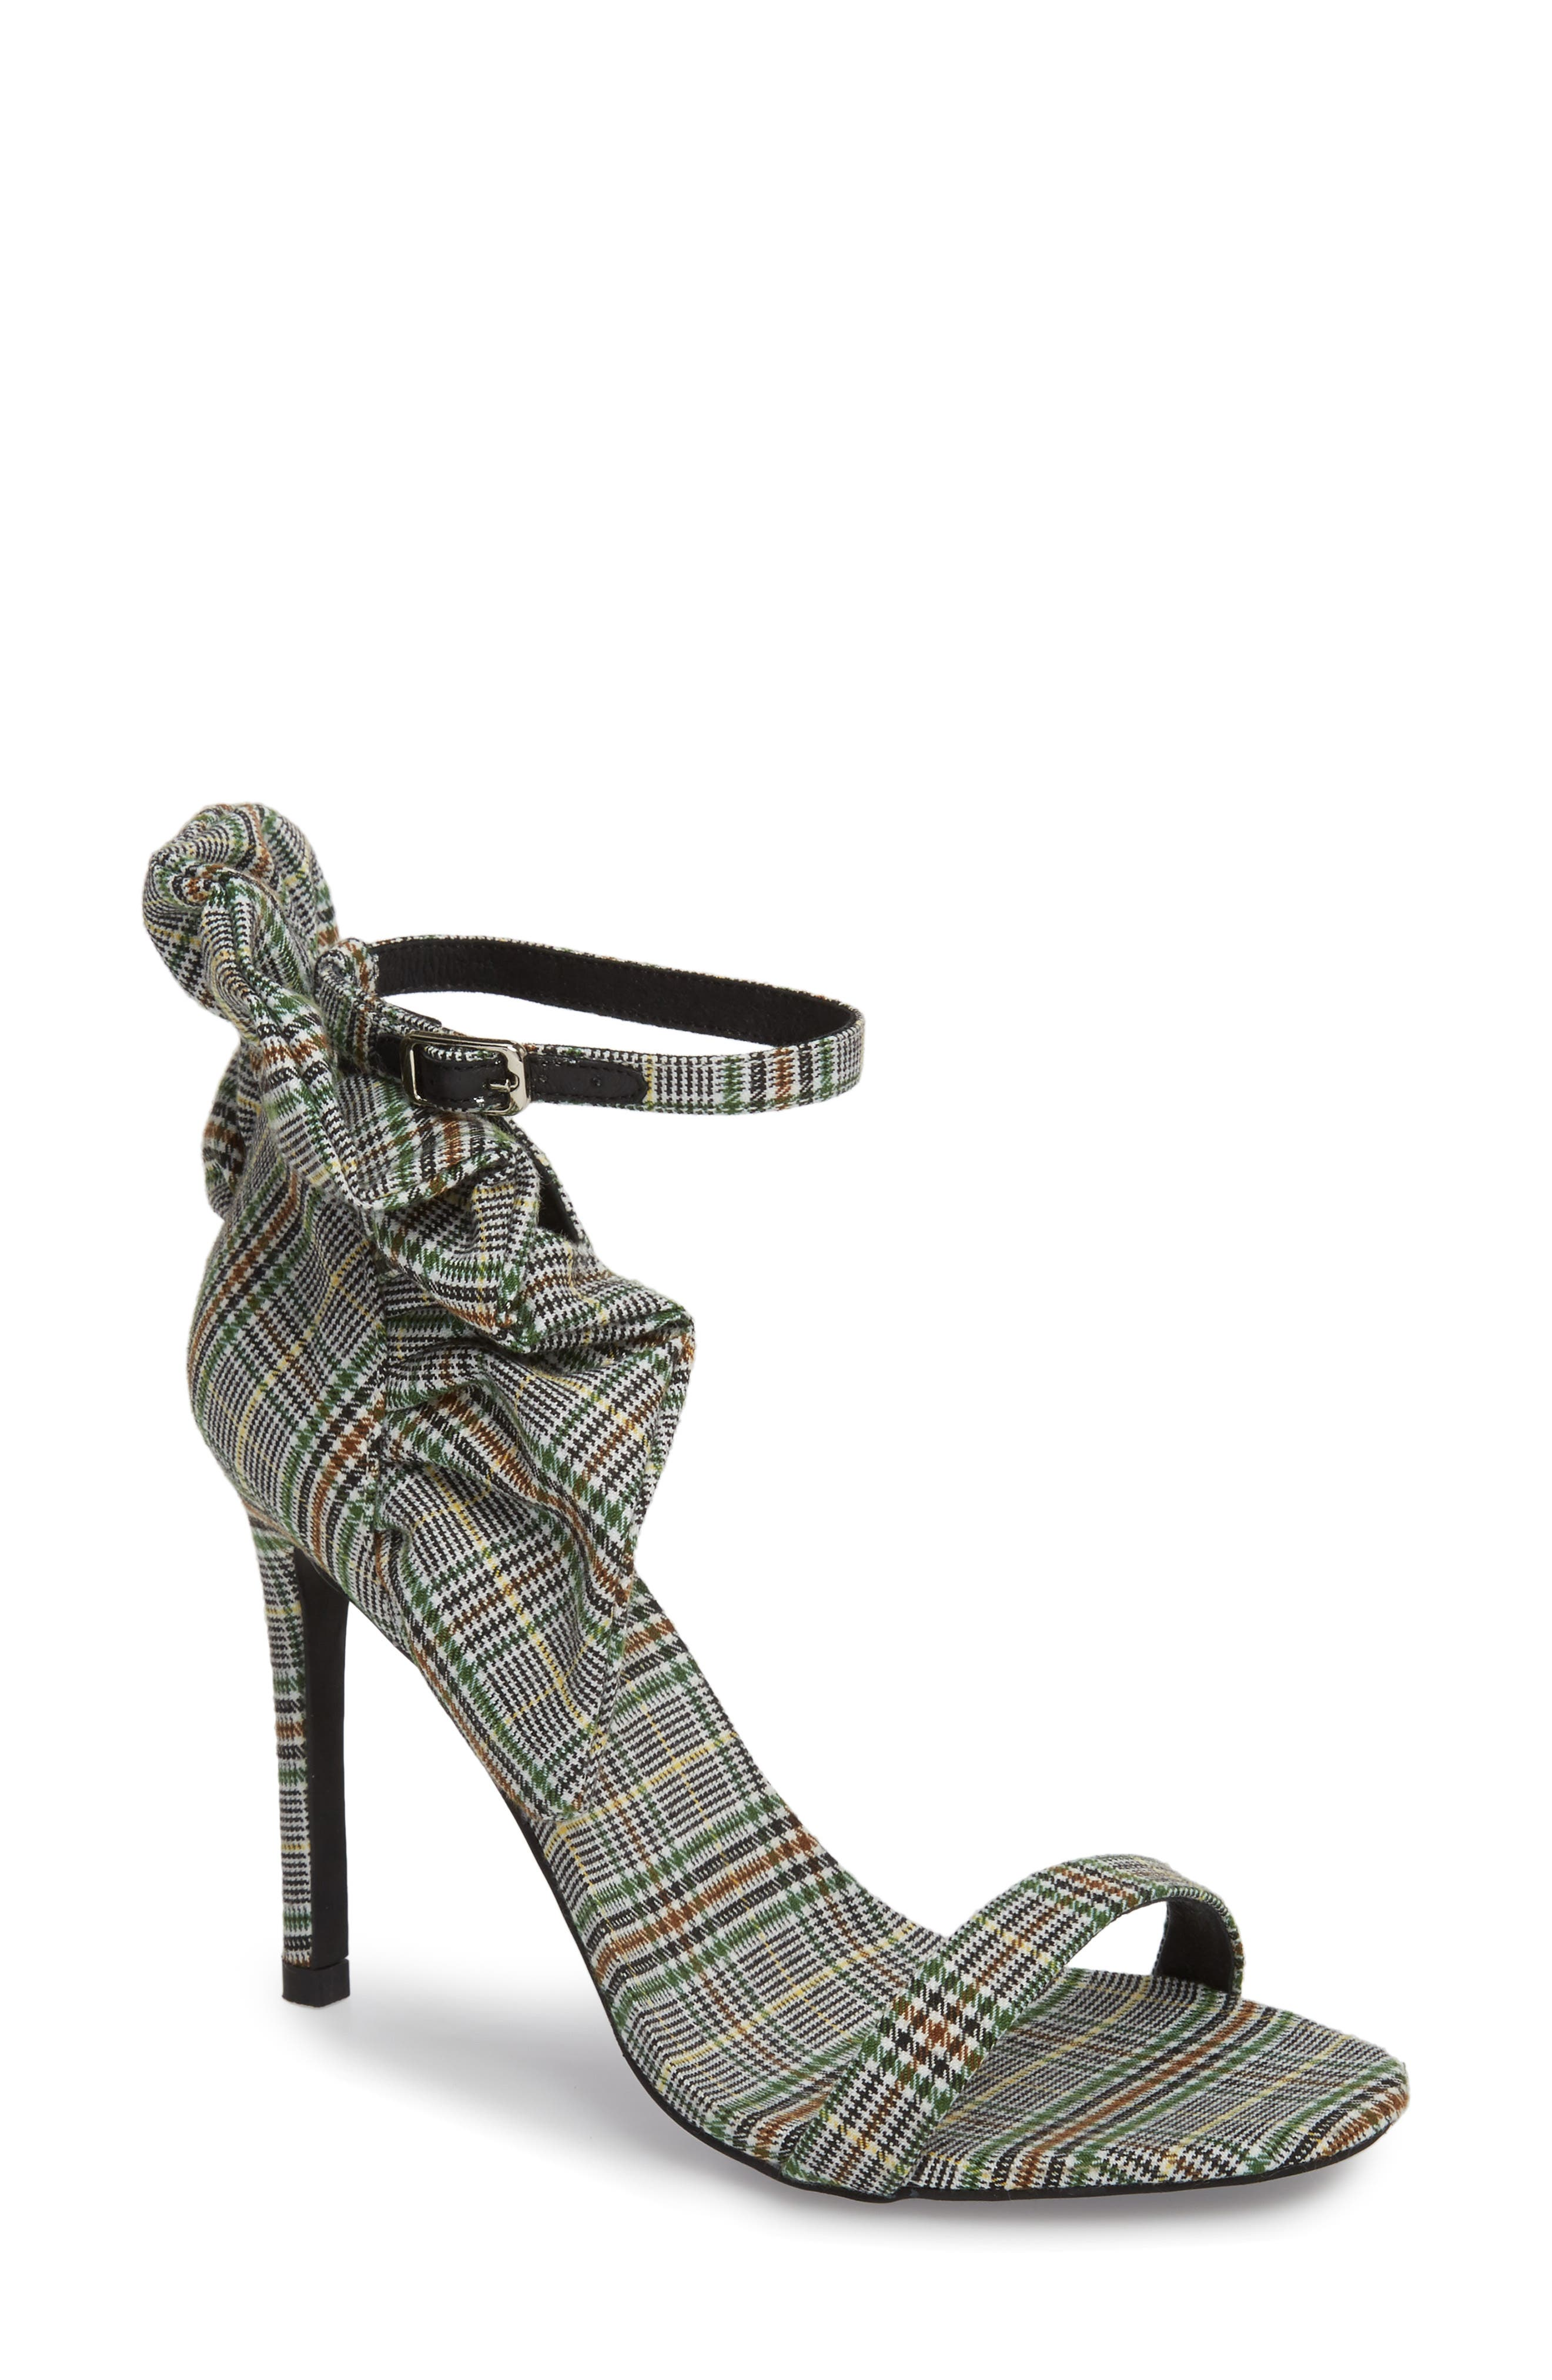 JEFFREY CAMPBELL,                             Cheshire Ruffle Sandal,                             Main thumbnail 1, color,                             334